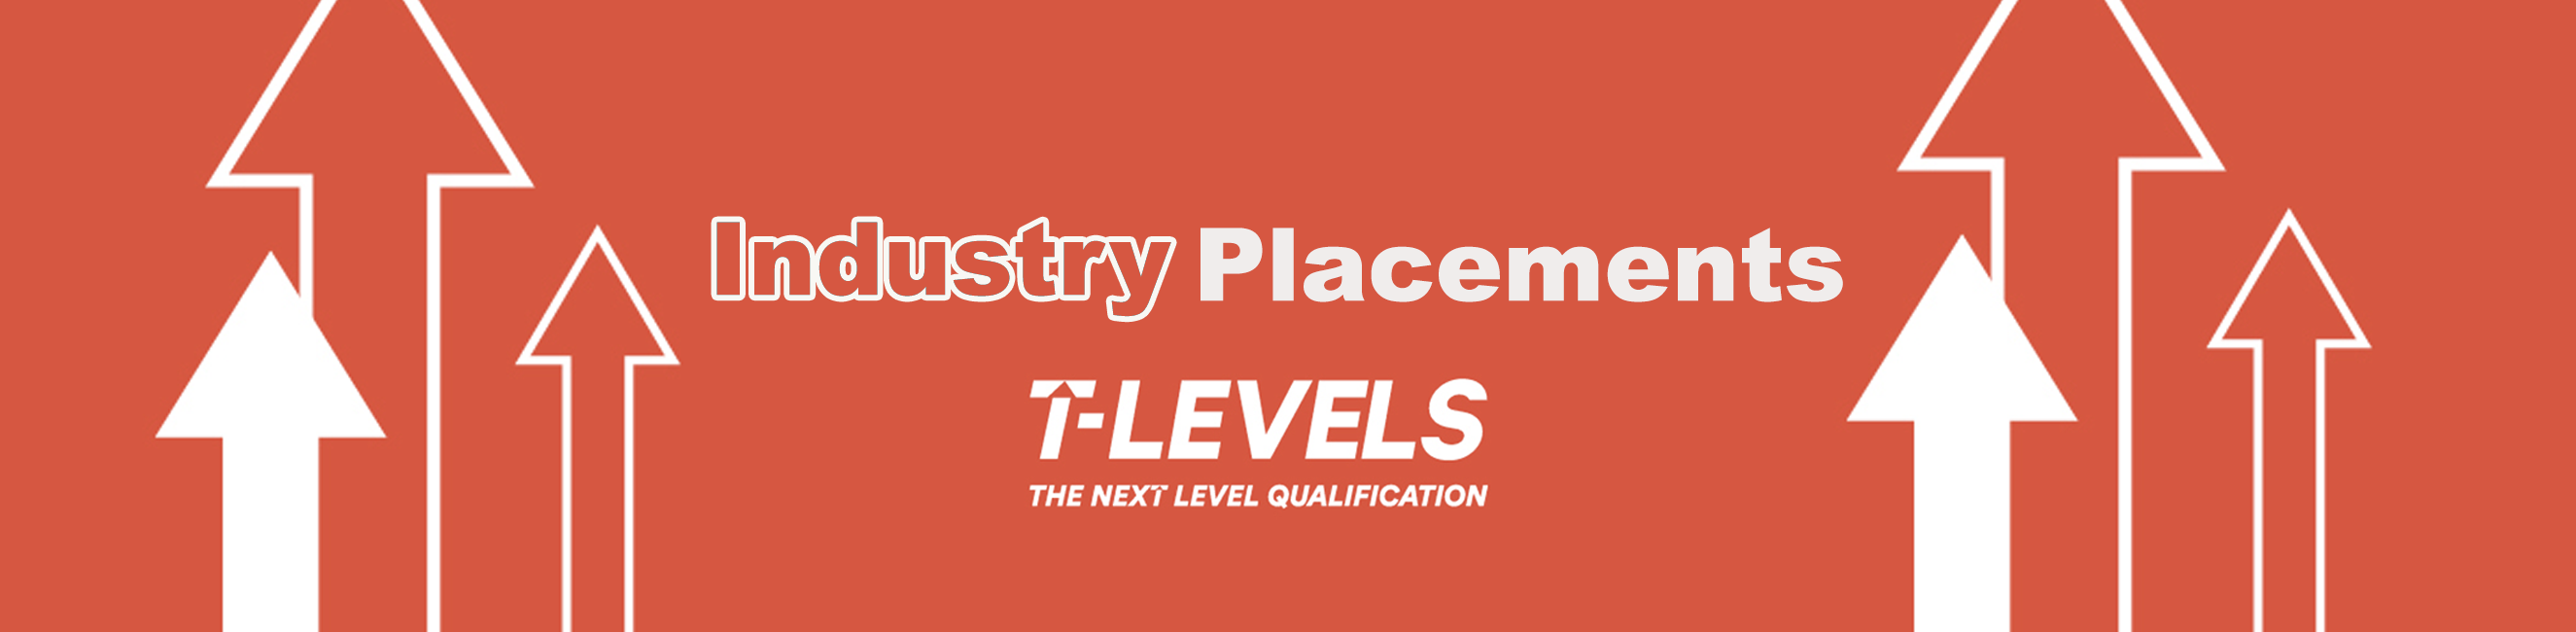 Industry Placements and T Levels at Weston College for employers